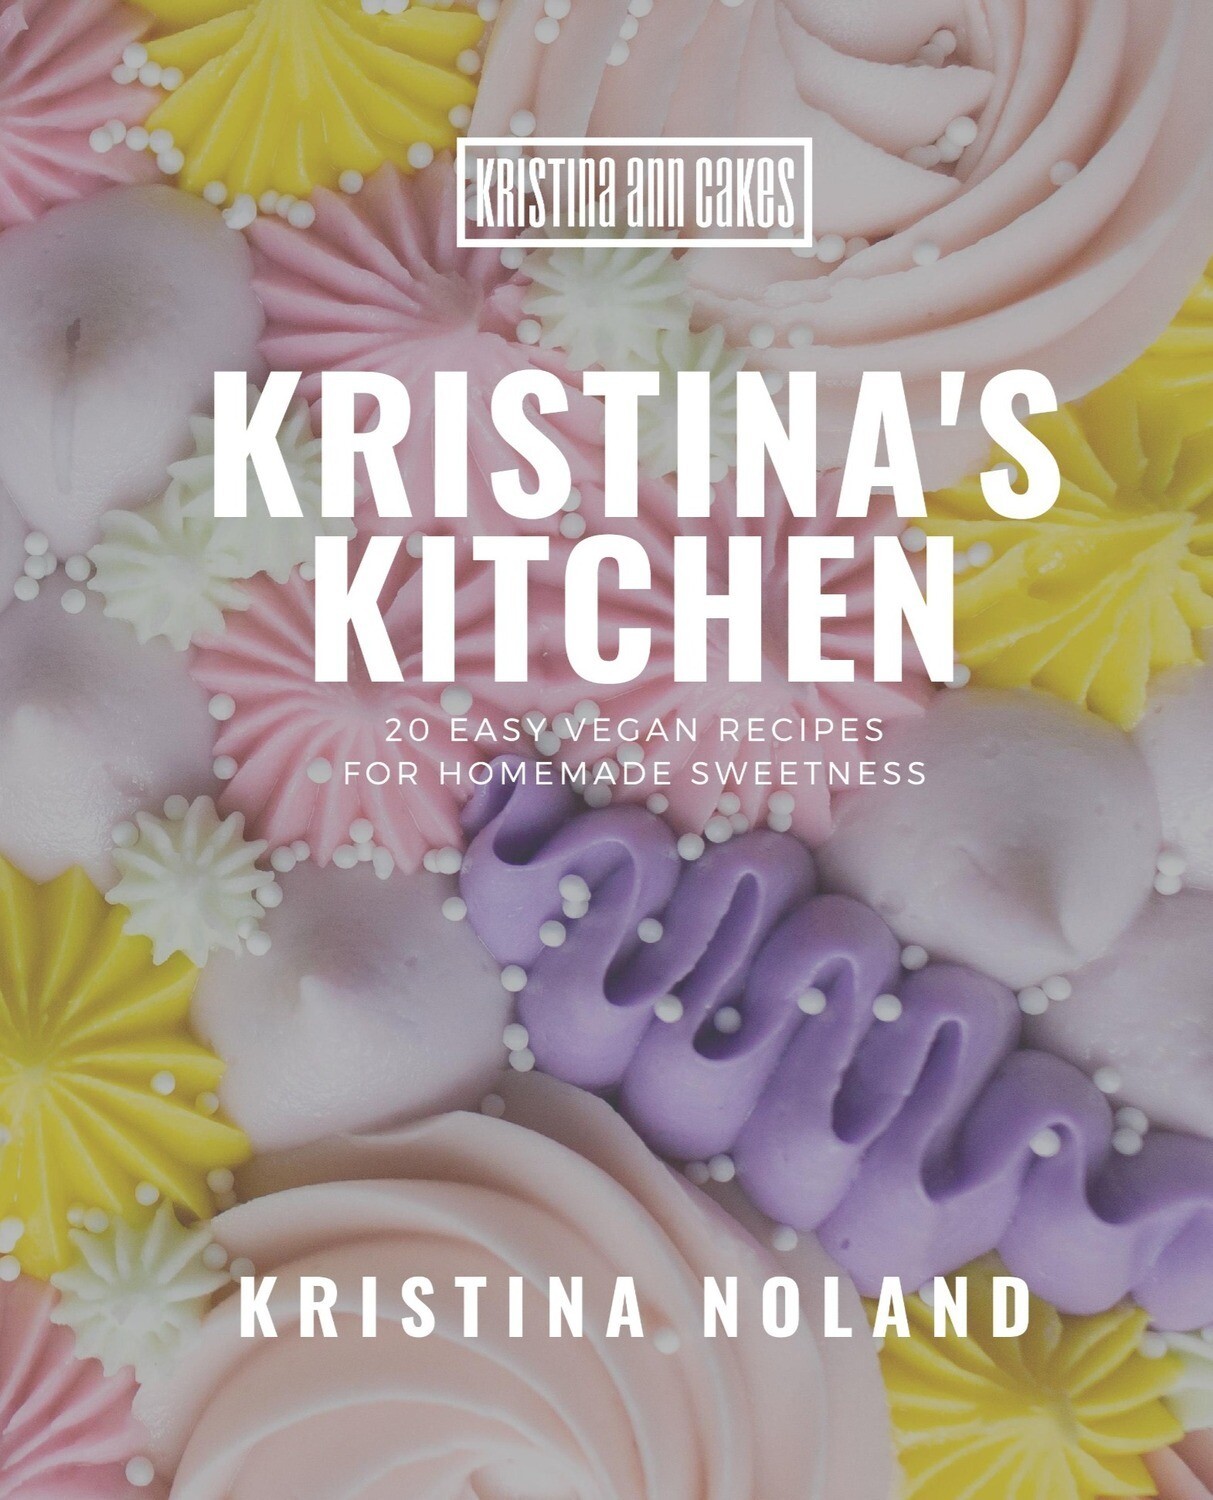 Kristina's Kitchen: 20 Easy Vegan Recipes for Homemade Sweetness